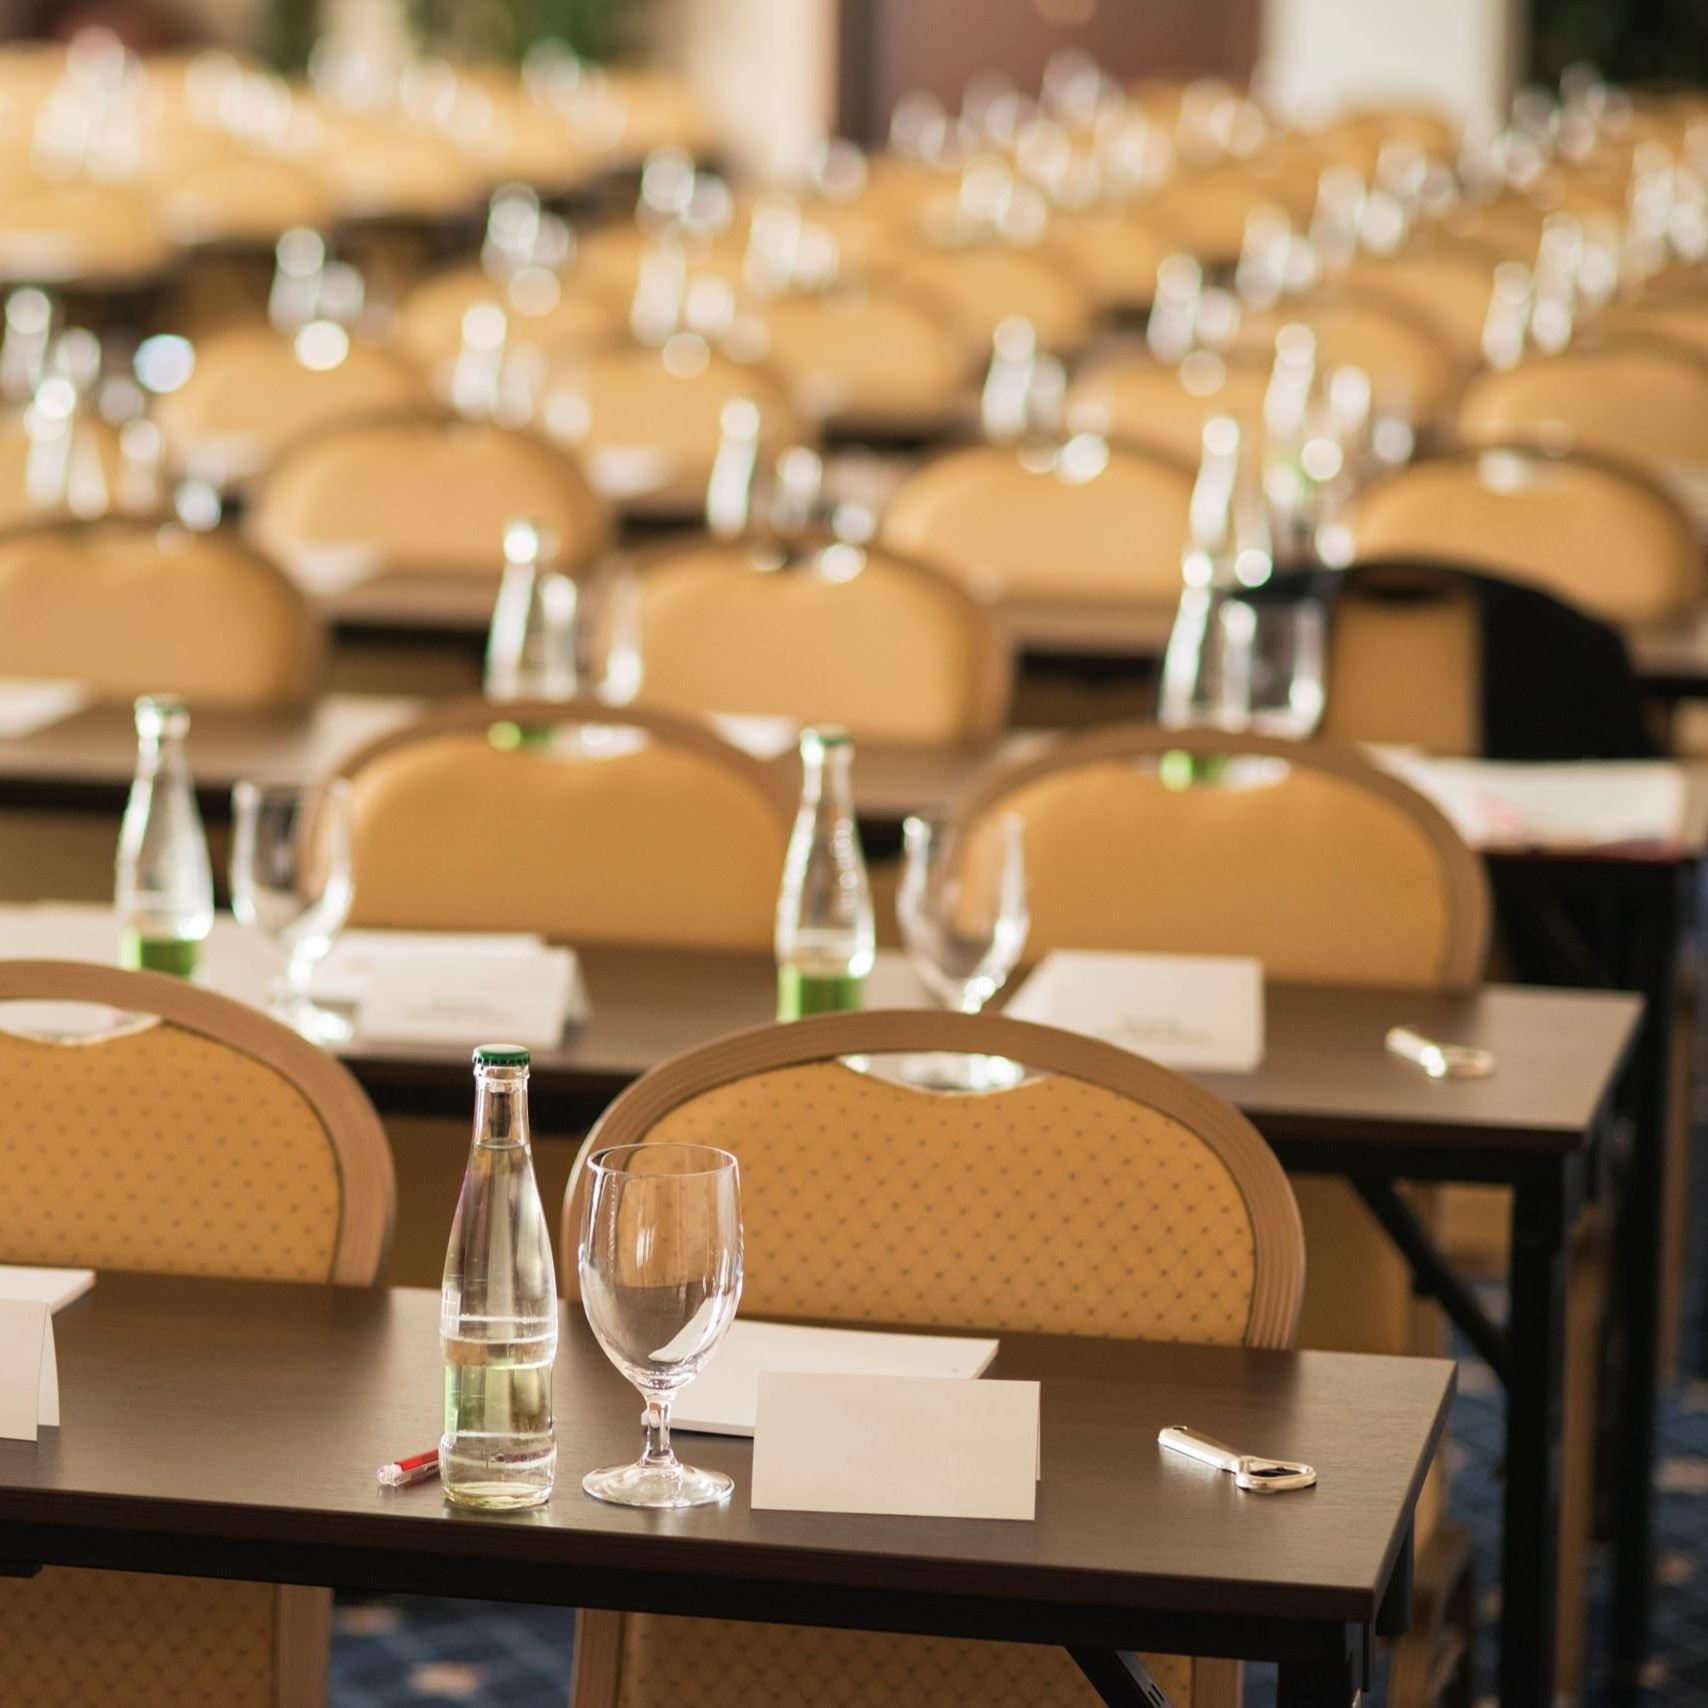 Rows of tables and chairs at a Business Conference